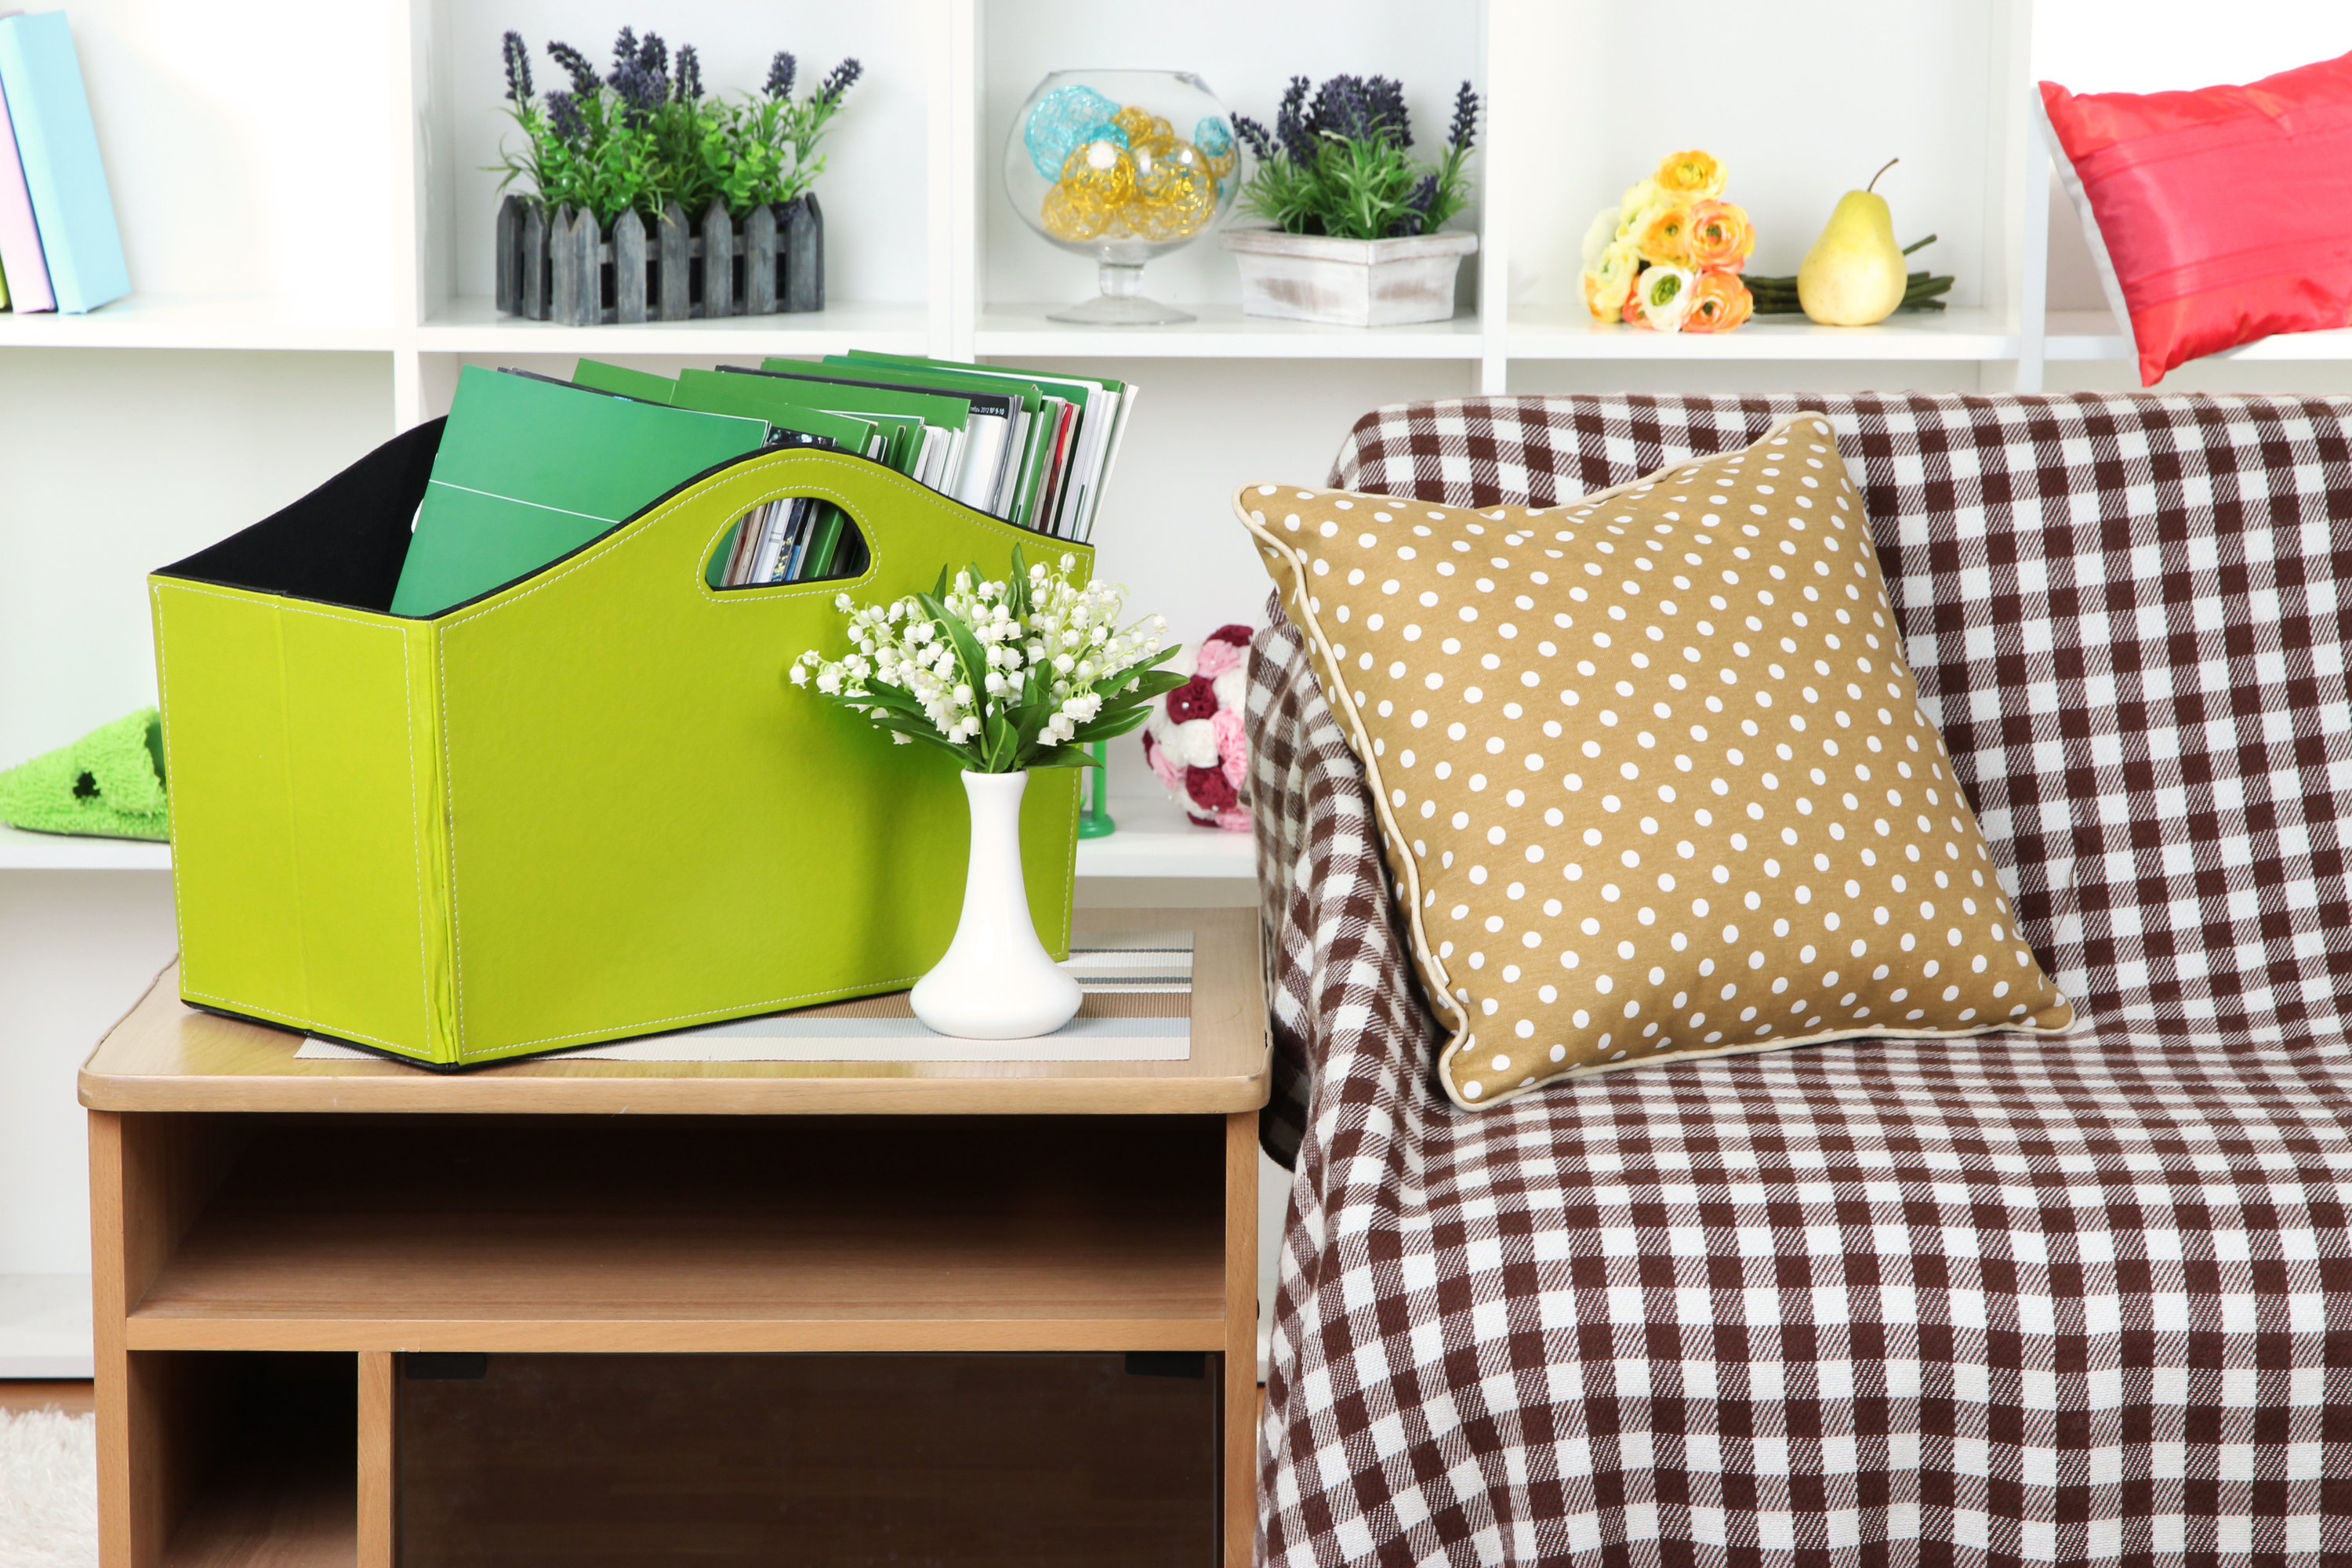 clutter   declutter   donate   organize   spring cleaning   clutter cleanse   cleanse   clean house   cleaning   organizing   clean   home   house